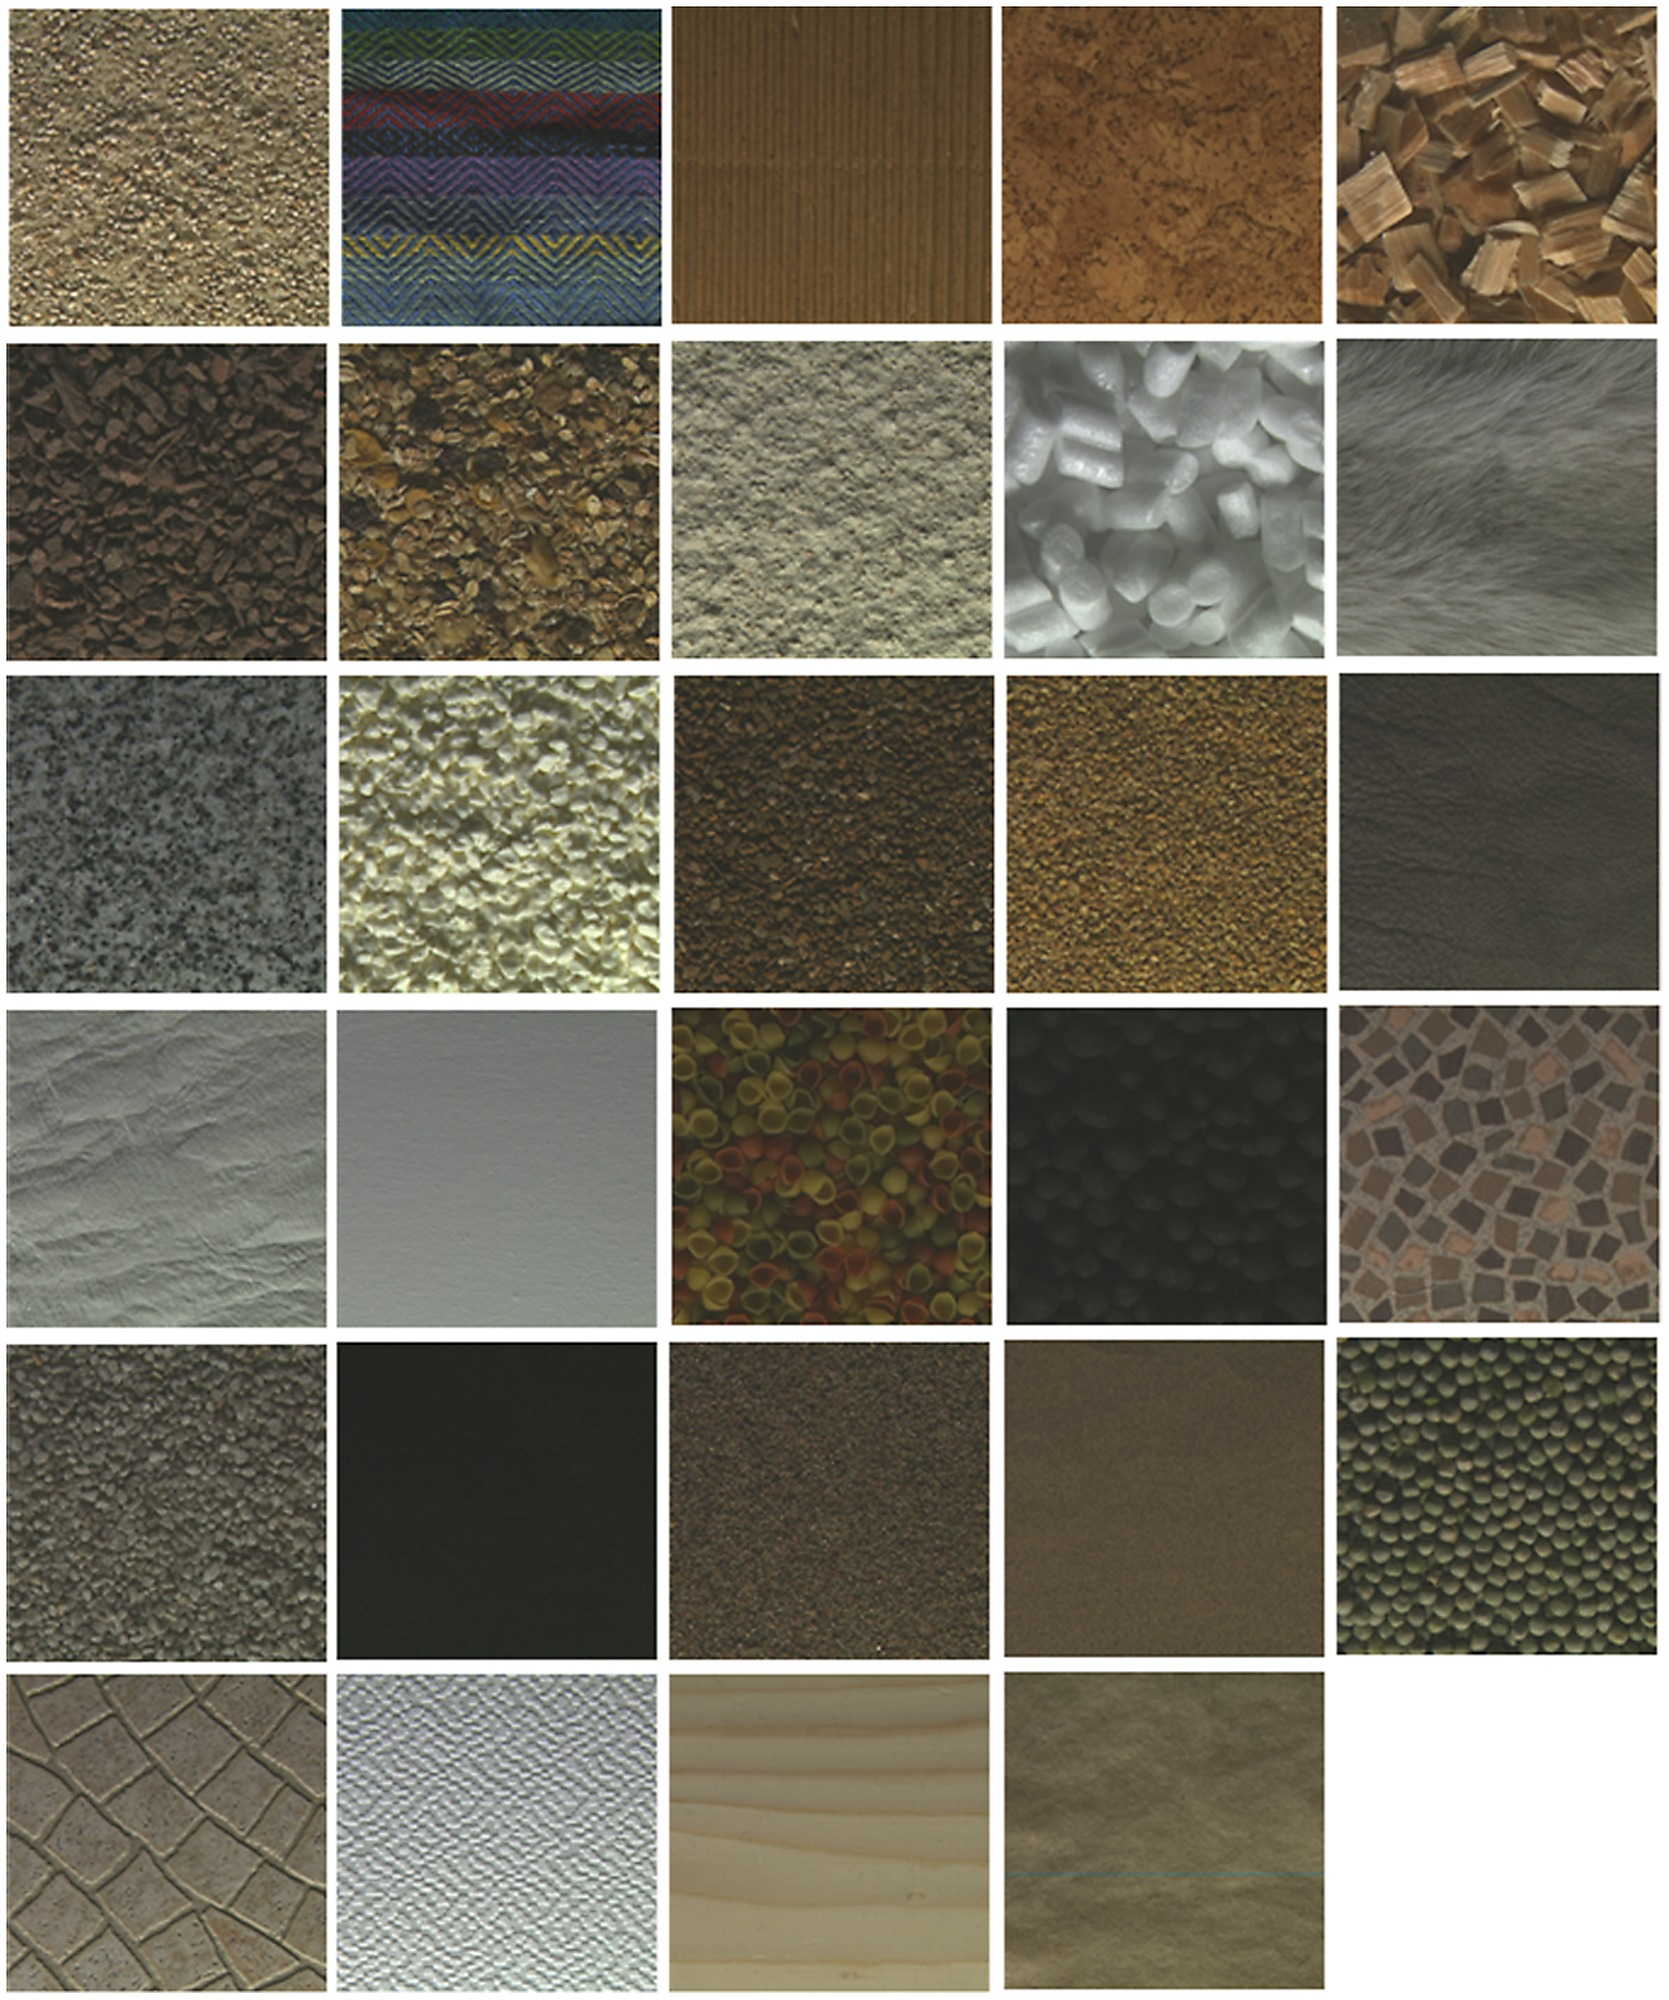 One Example From Each Category In The Outex Texture Database